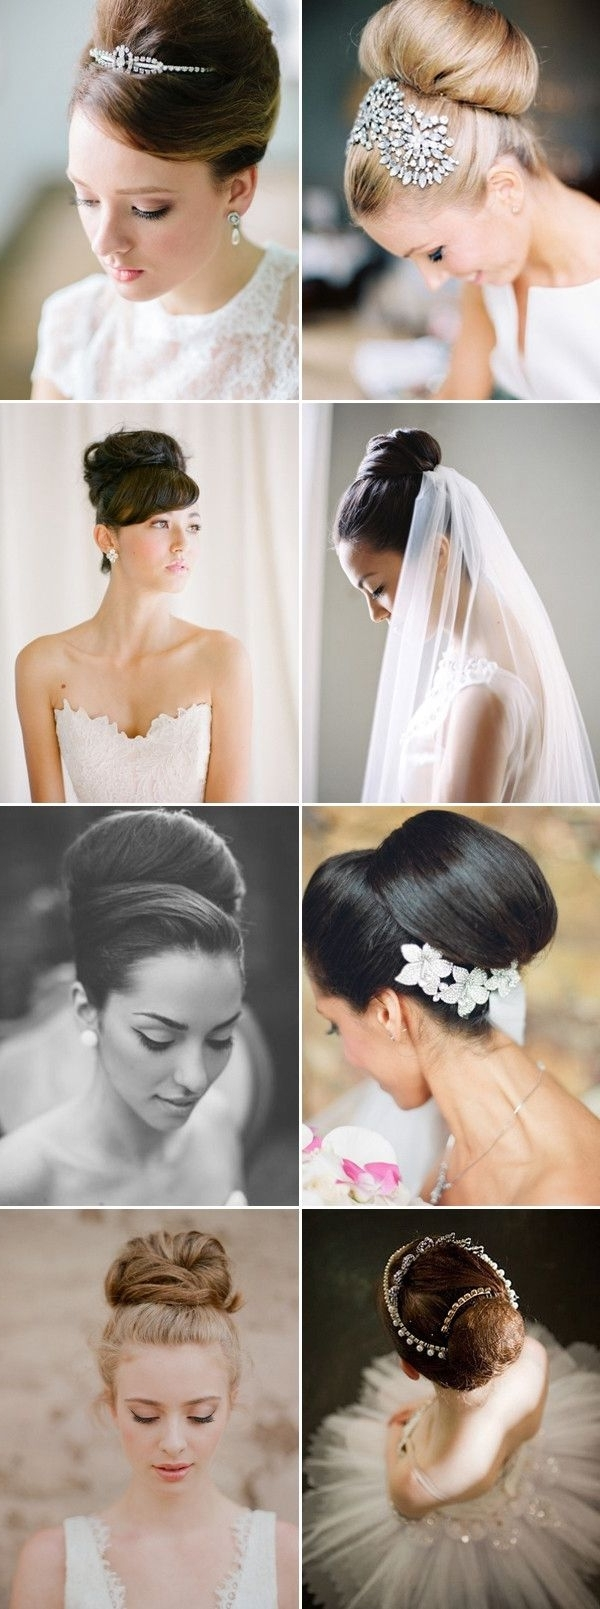 100+ Romantic Long Wedding Hairstyles 2018 – Curls, Half Up, Updos Pertaining To Newest Audrey Hepburn Wedding Hairstyles (View 1 of 15)